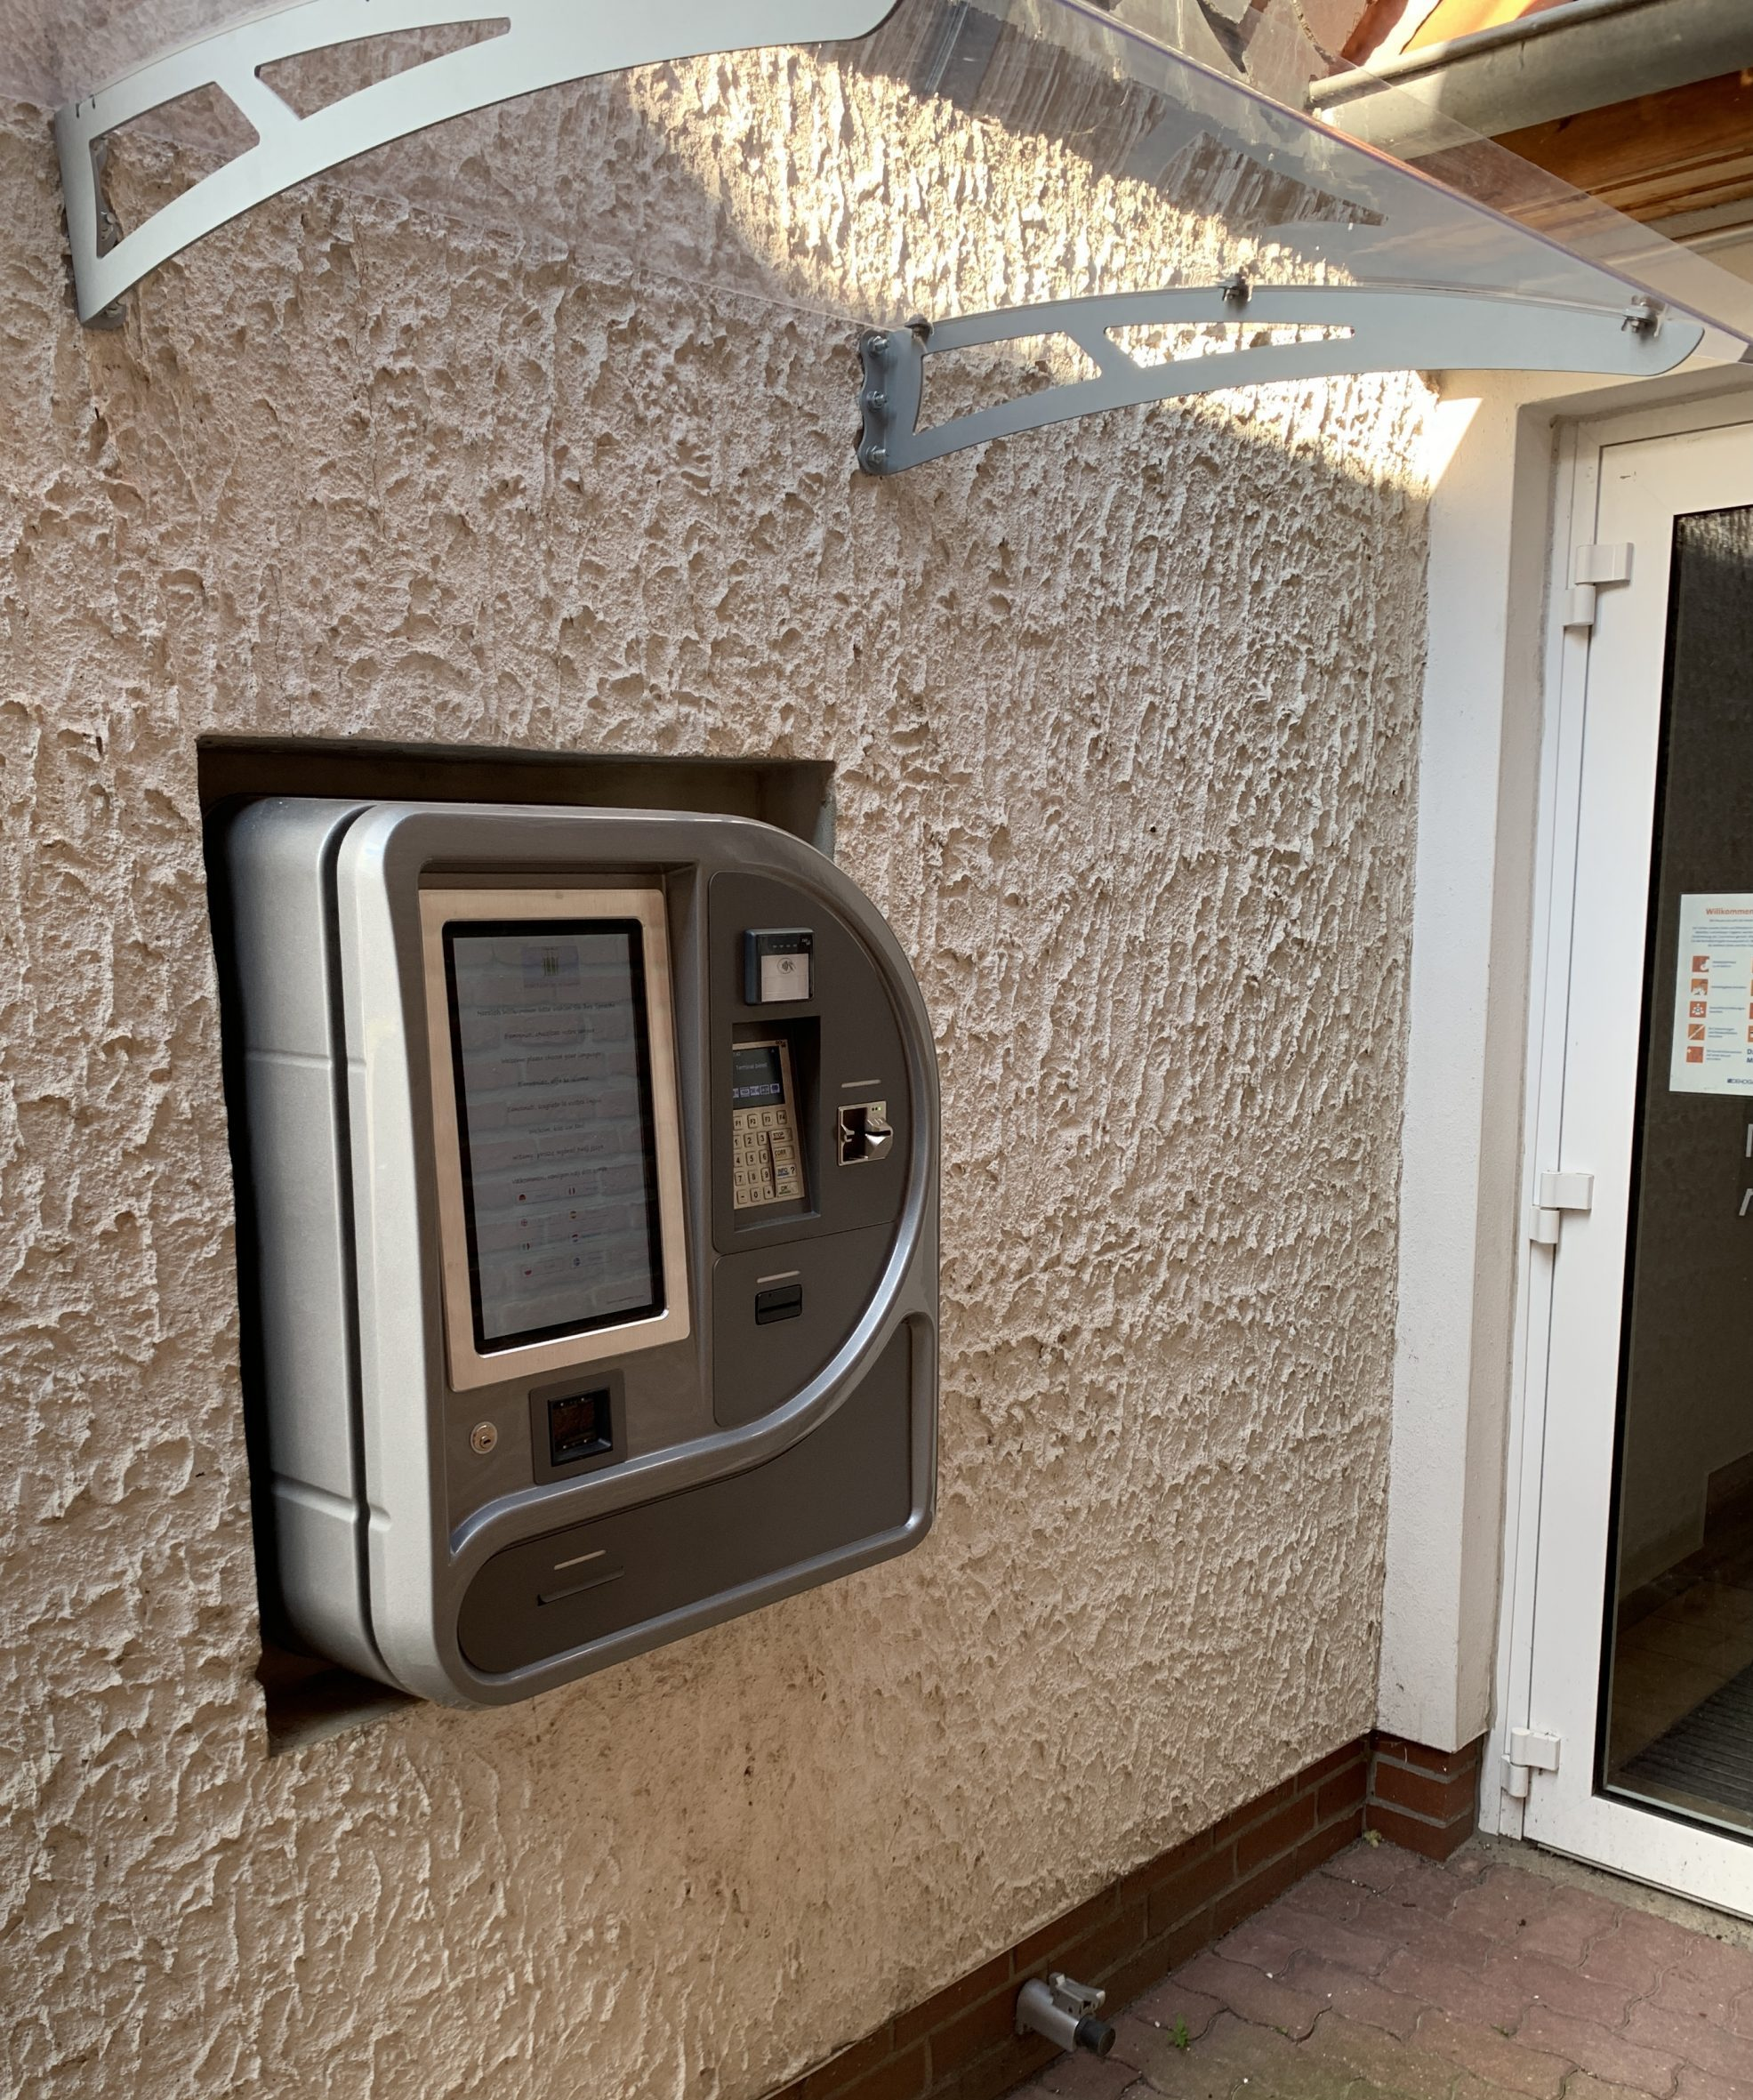 Nachteingang mit Check-In Automat